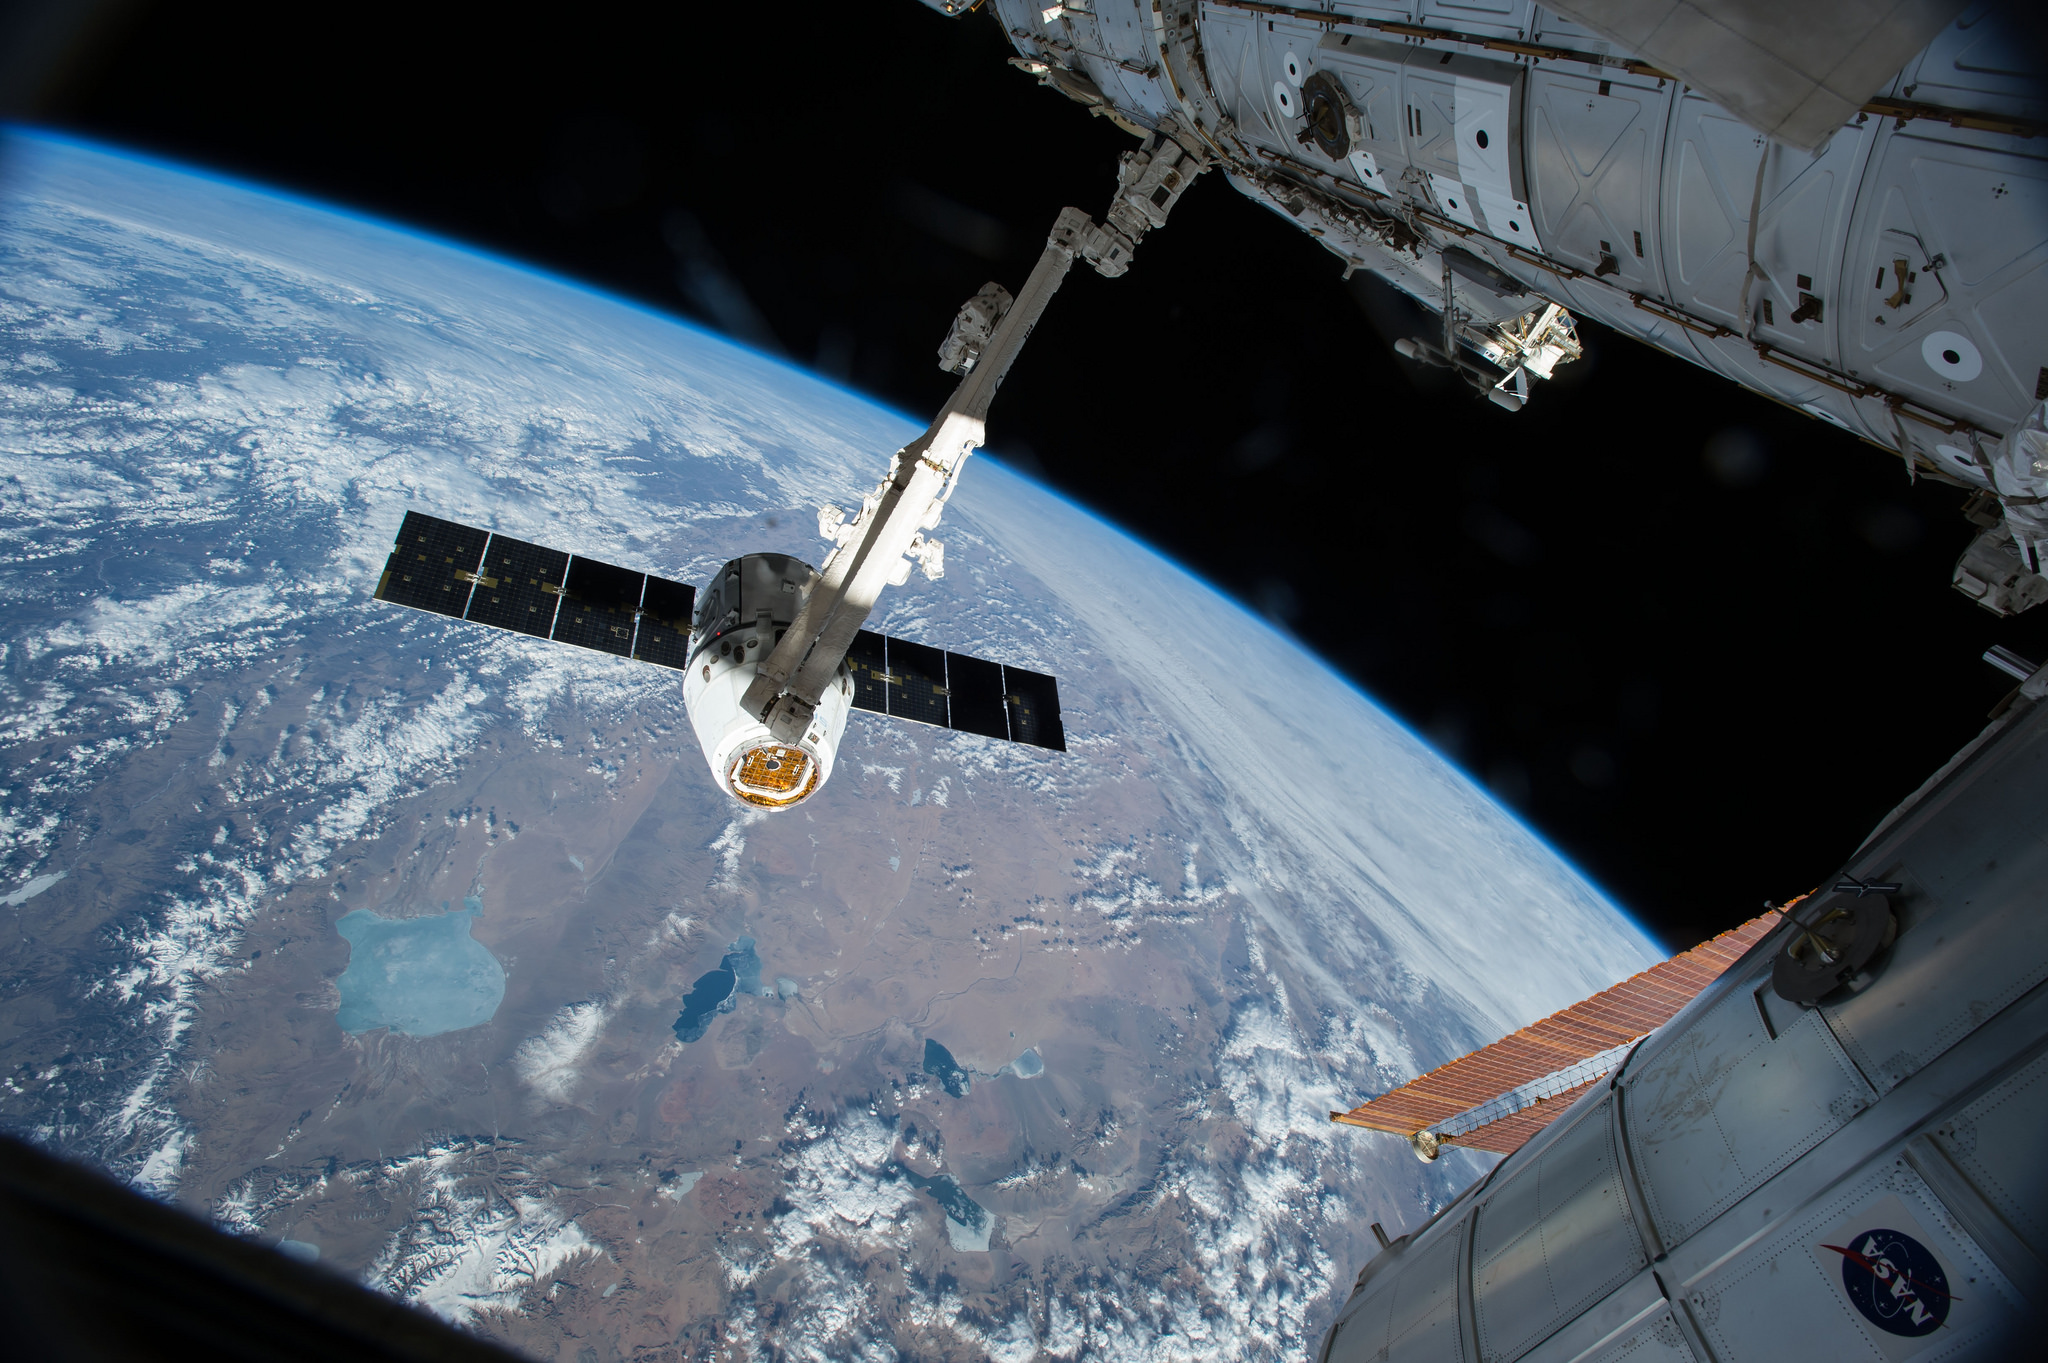 canadarm 2 grapples the spacex dragon